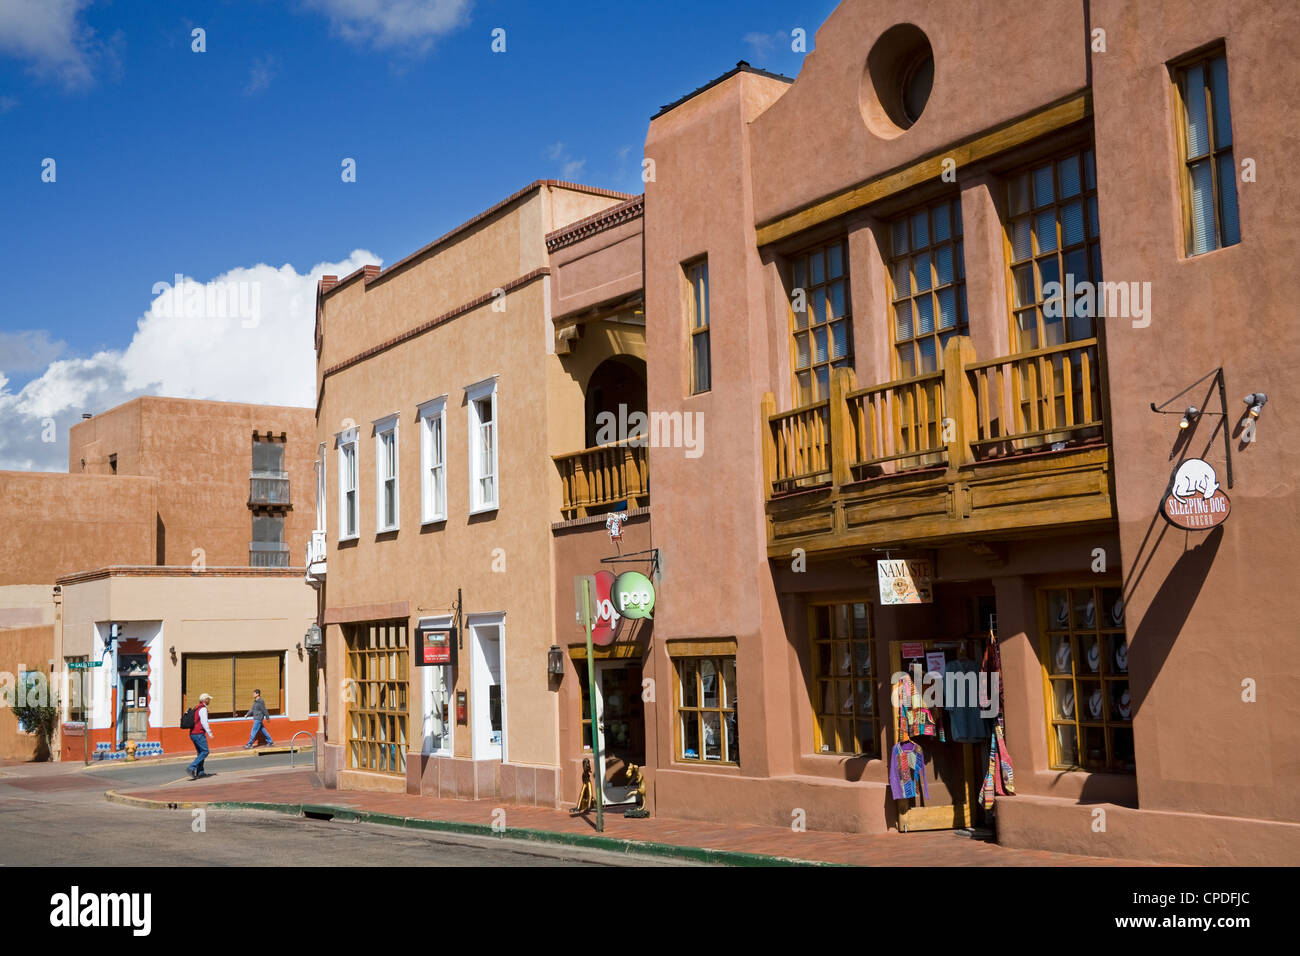 Water Street, Santa Fe, New Mexico, United States of America, North America - Stock Image